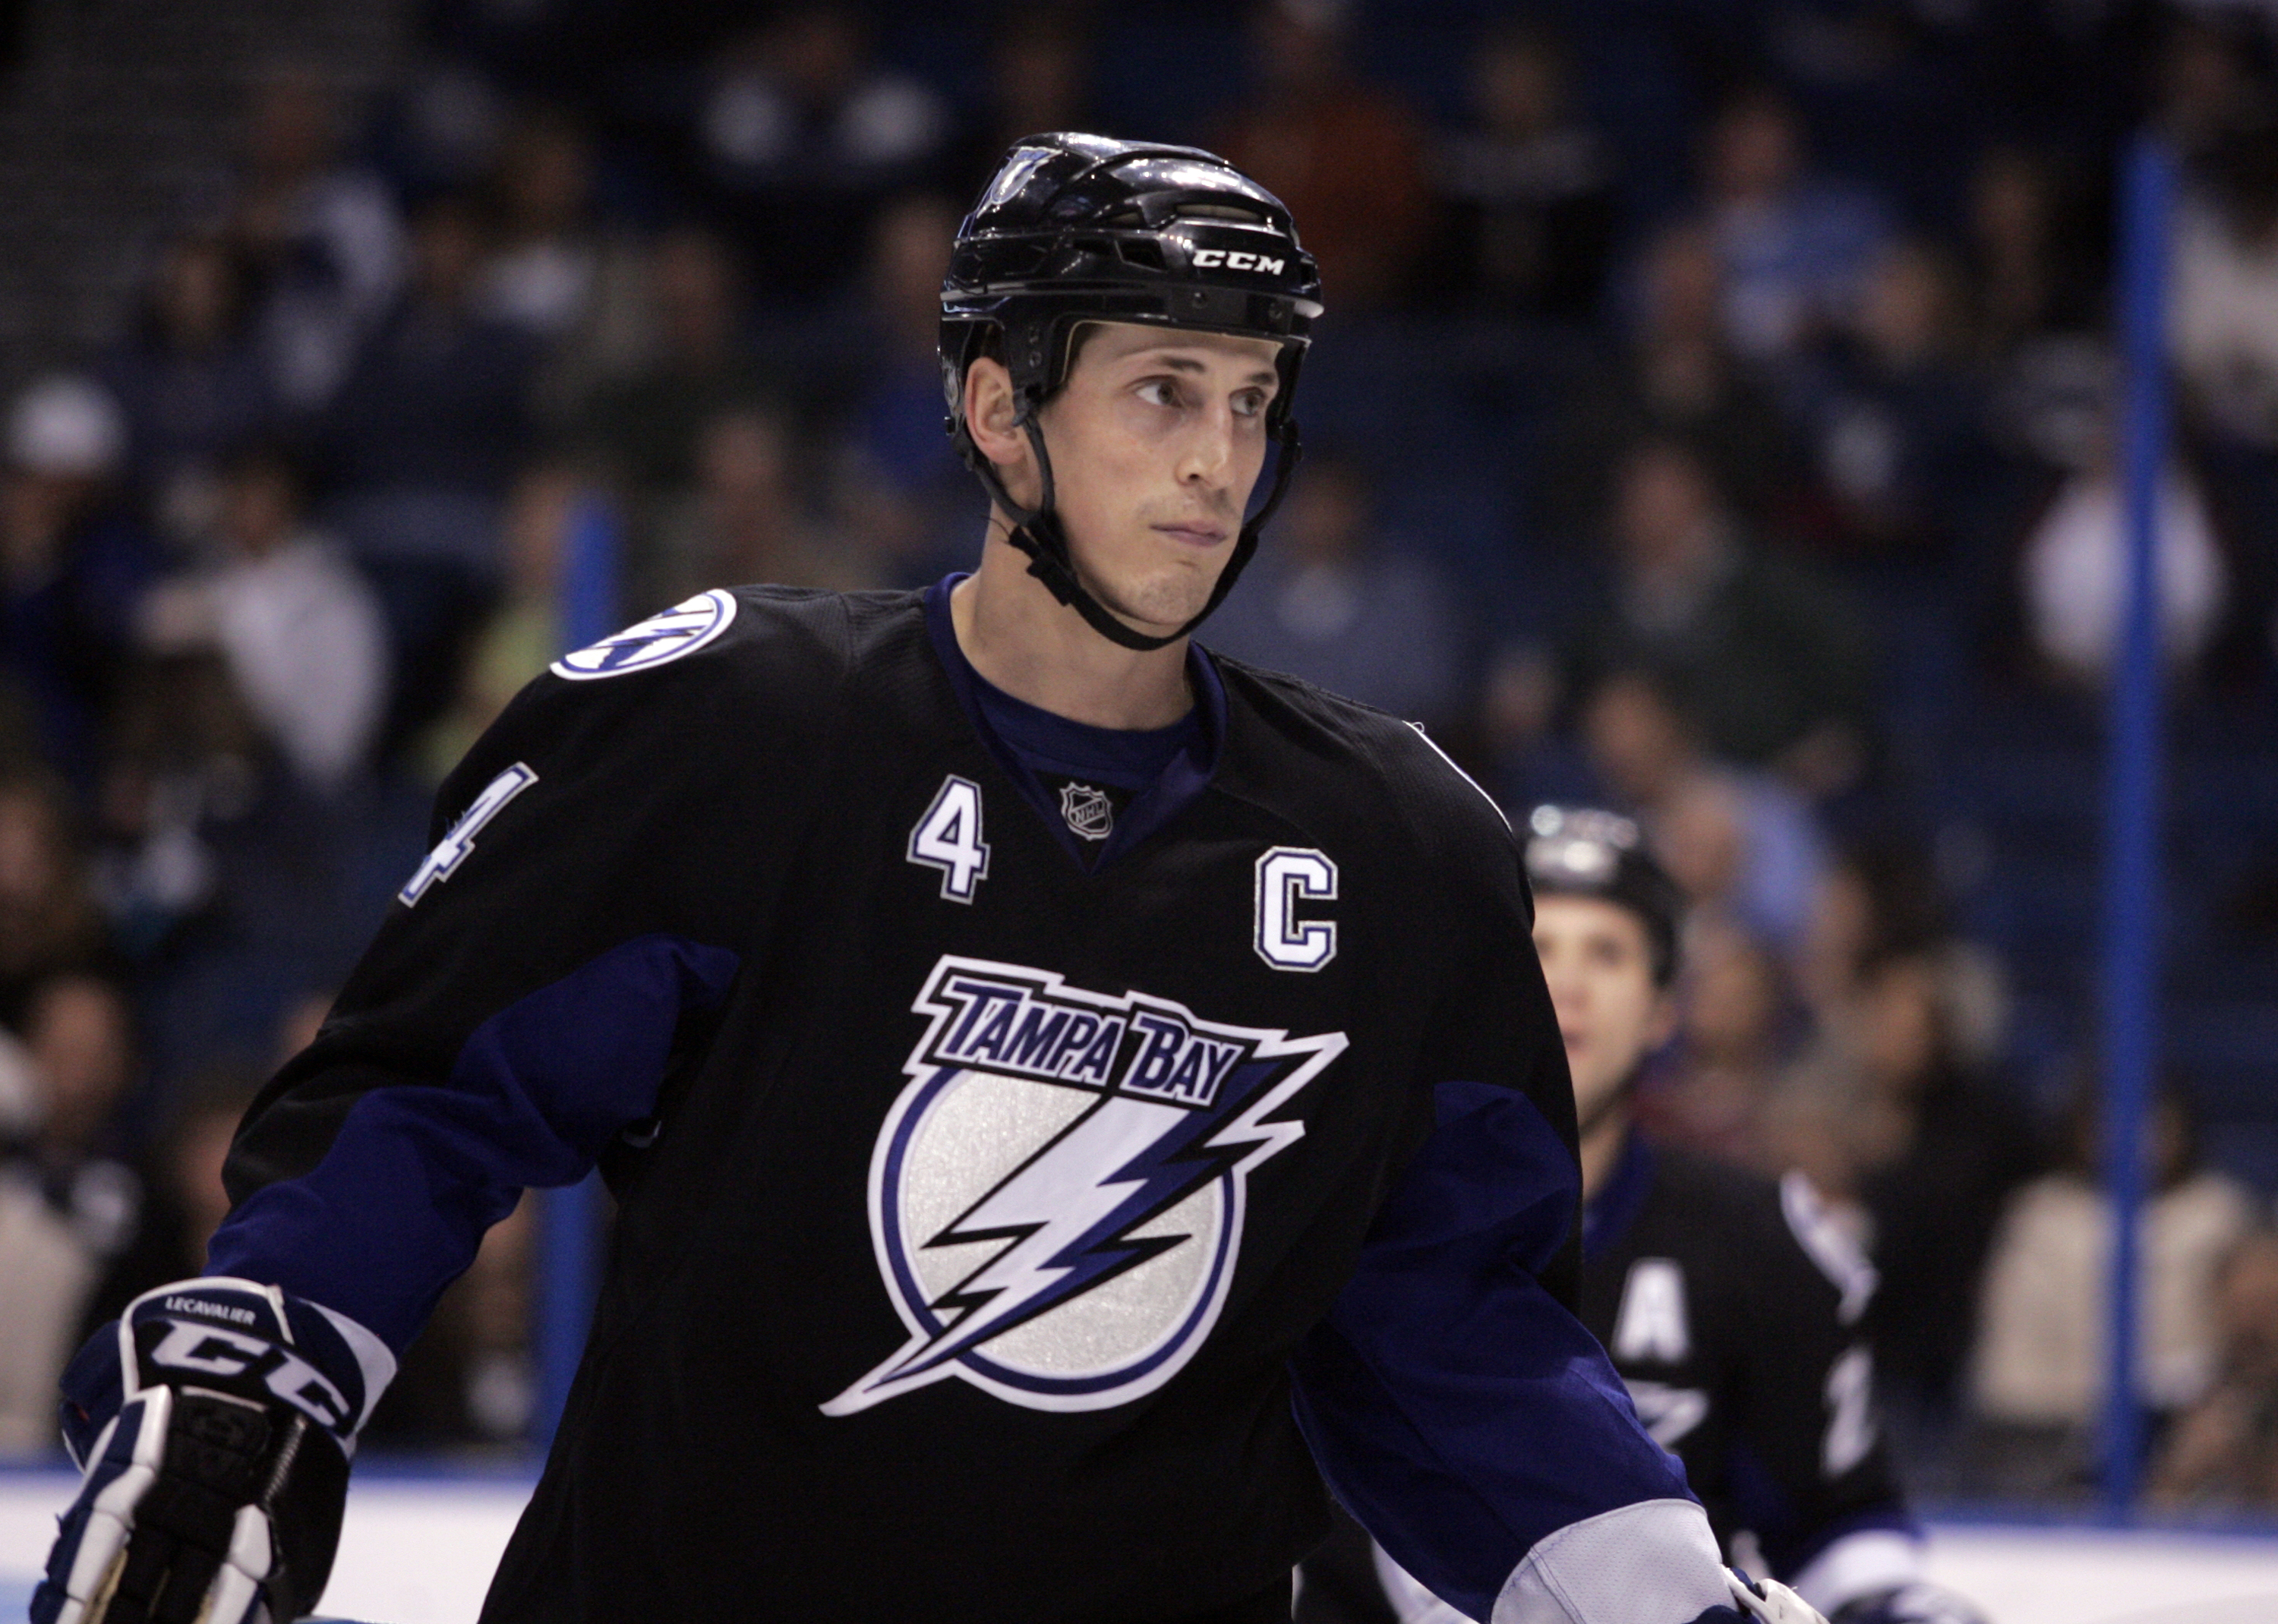 The Bolts captain is hot